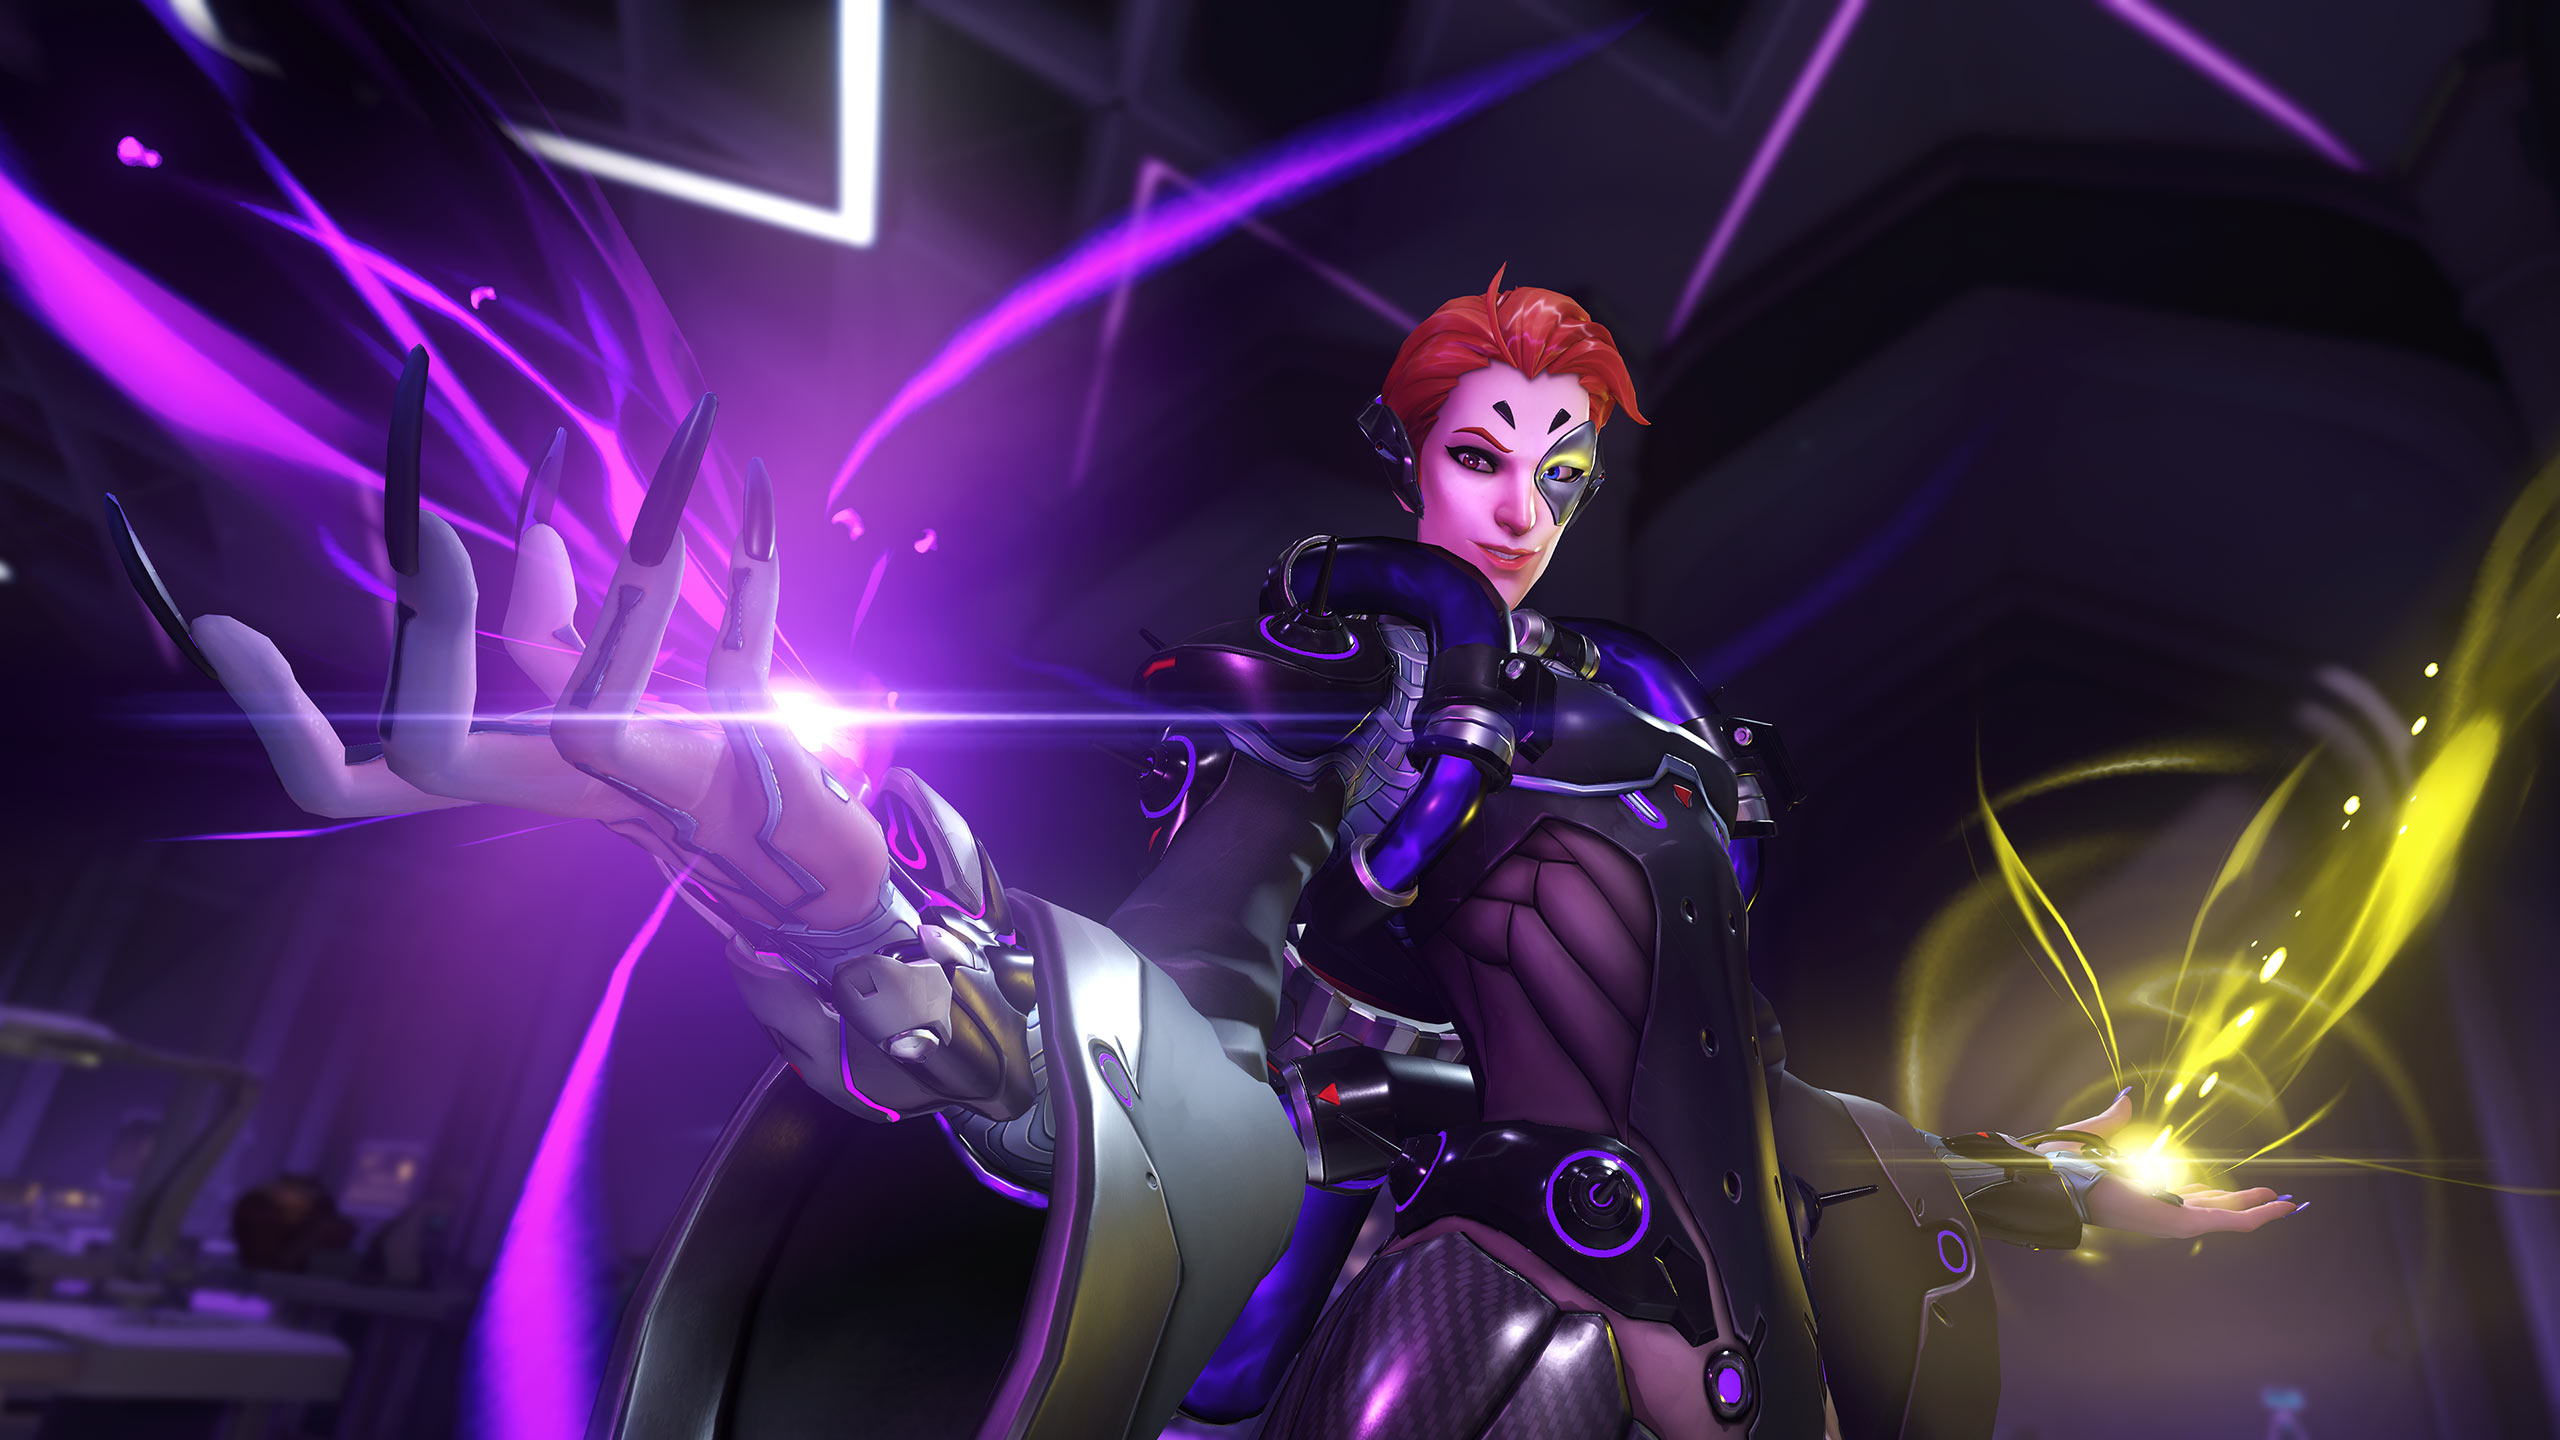 Moira is one of the Support heroes in Overwatch. (Image: Blizzard)